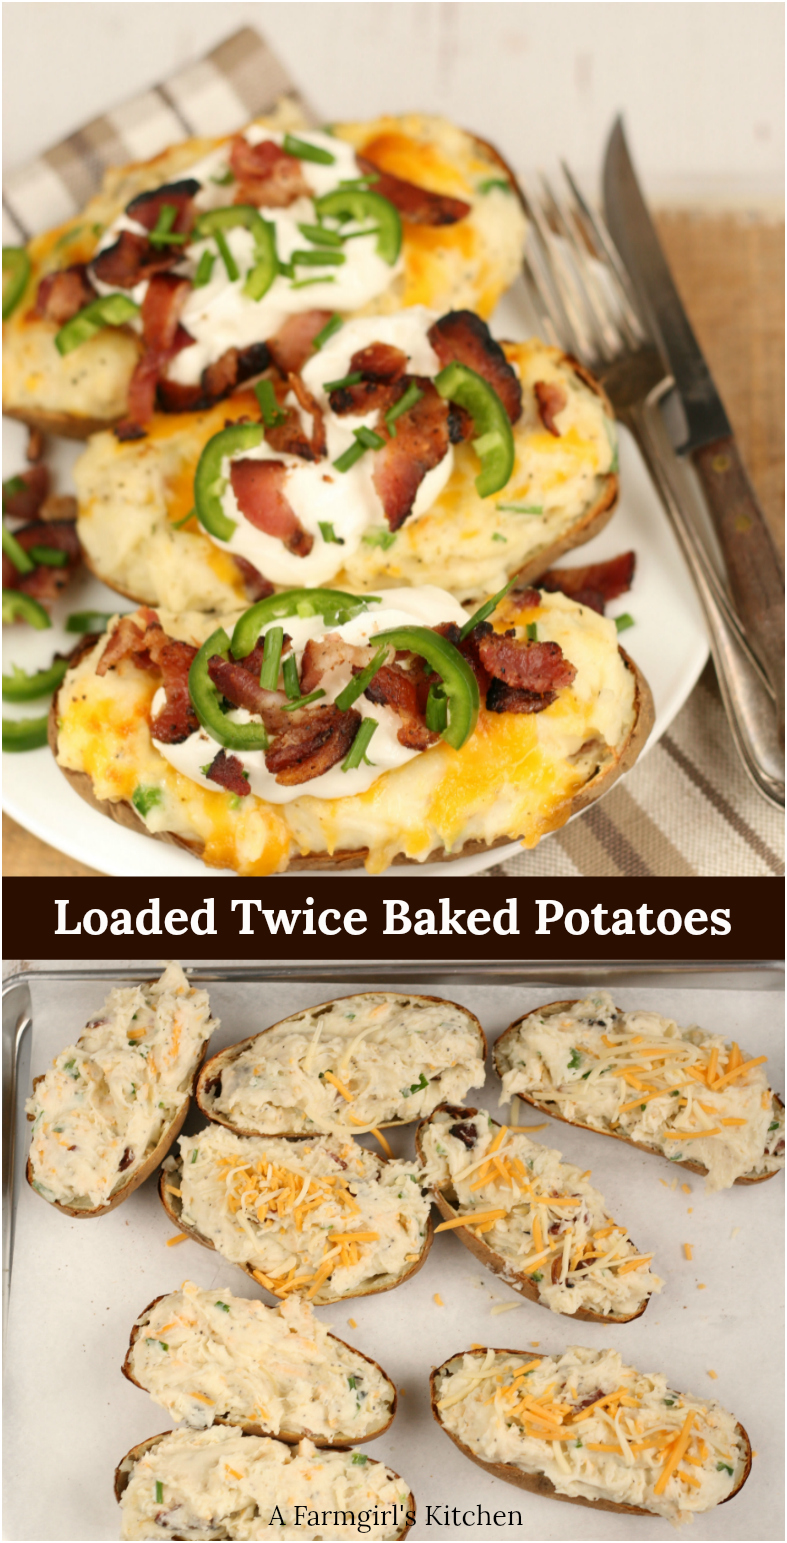 Loaded Twice Baked Potatoes are easy to make and use only a few simple ingredients. Top with shredded cheese, sour cream, bacon, chives, and slices of jalapeno peppers. #recipes #footballparty #twicebakedpotatoes #potatoes #easyrecipes